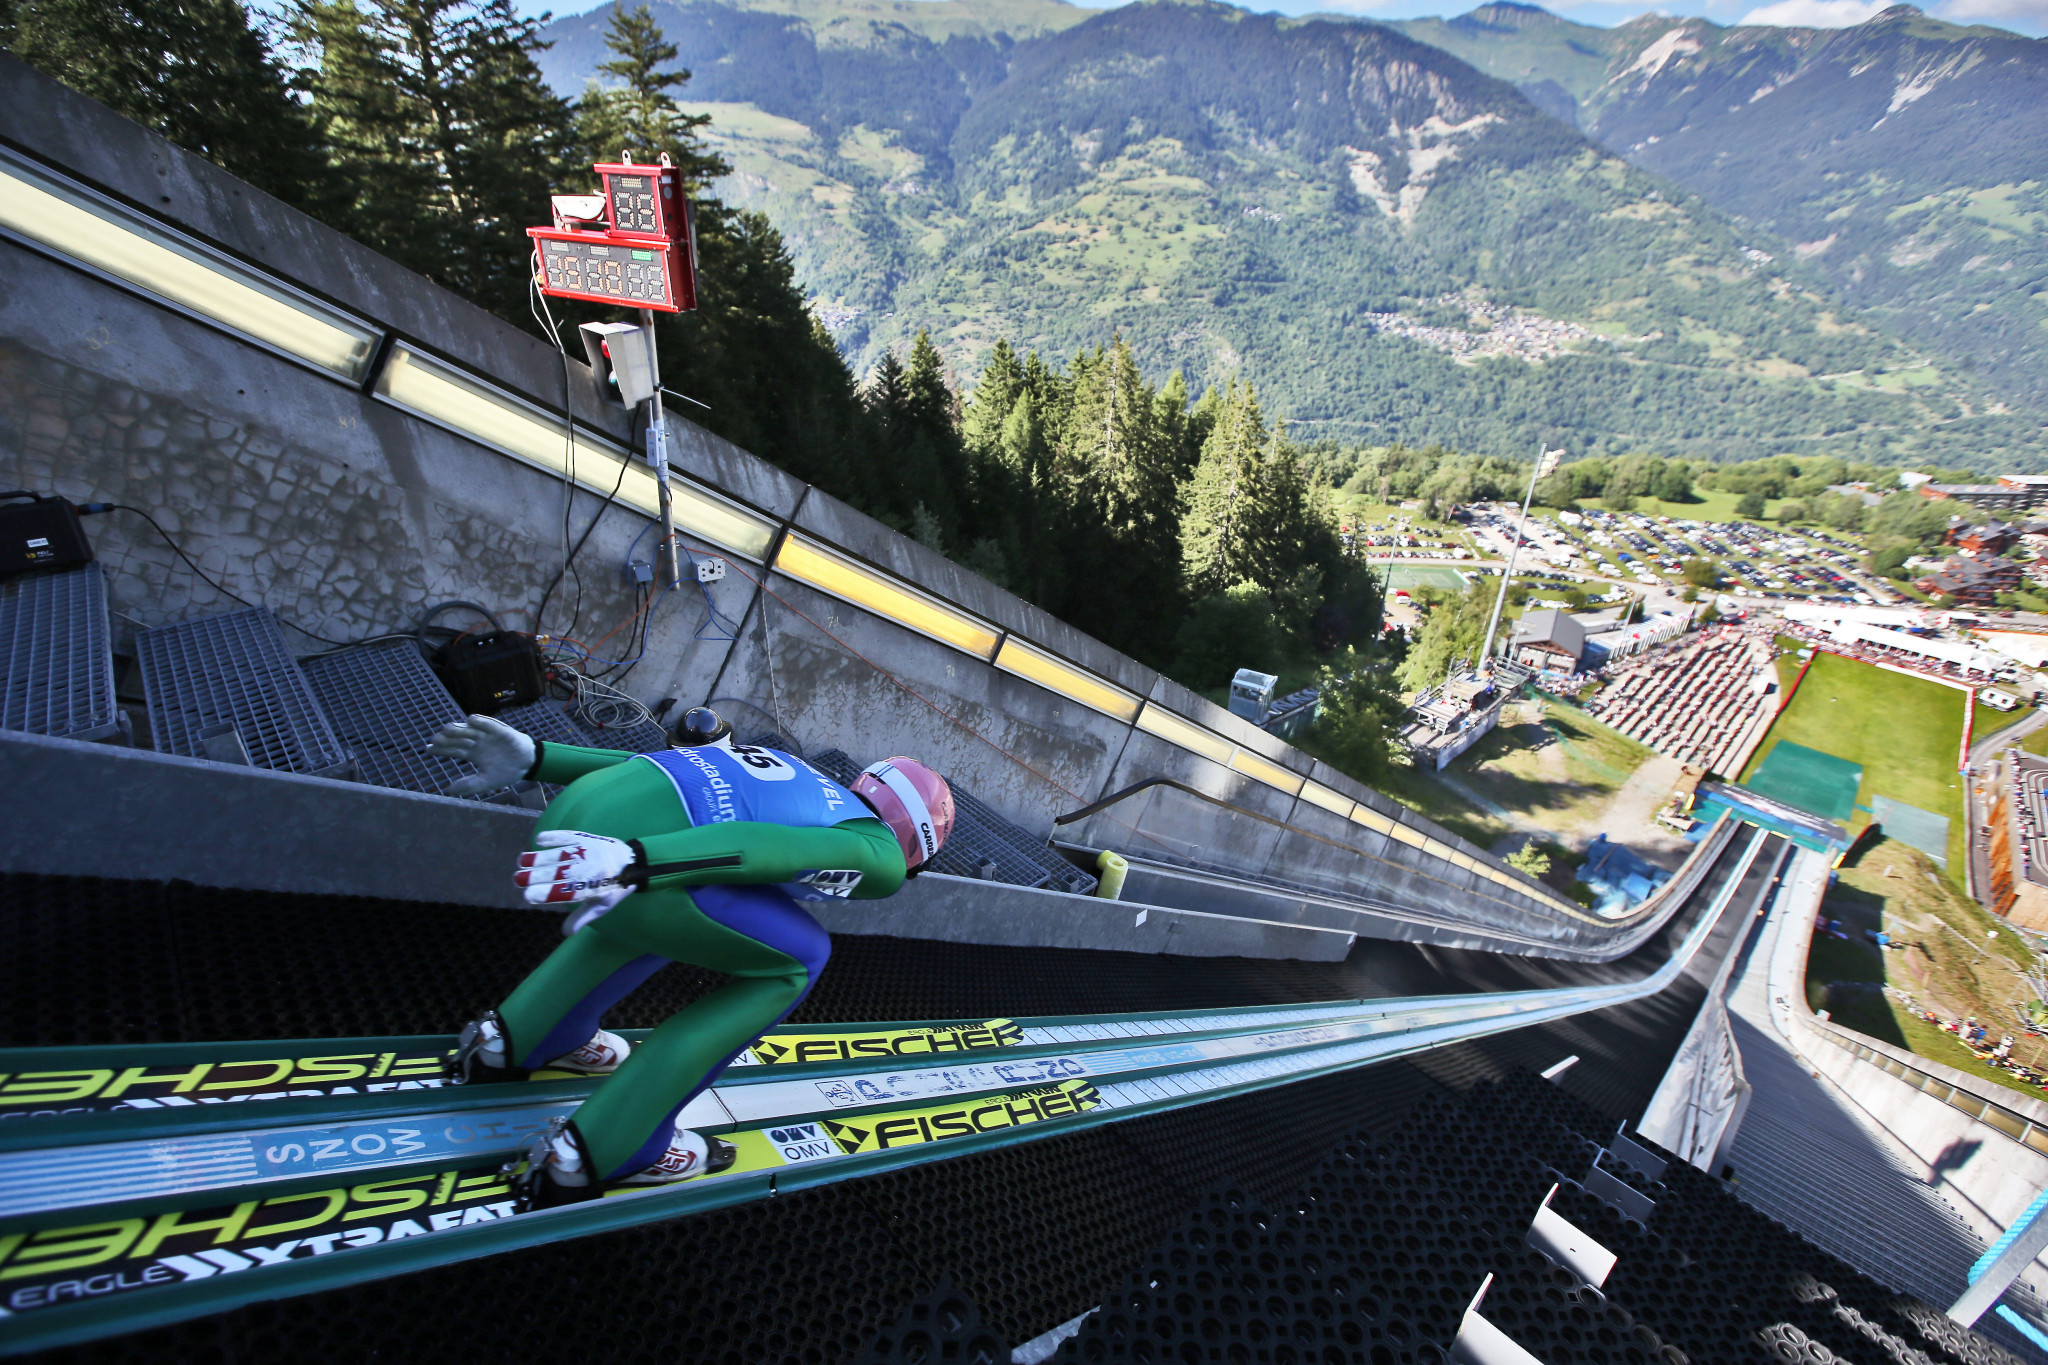 Summer ski jumping events will have a different feel due to the COVID-19 pandemic ©Getty Images